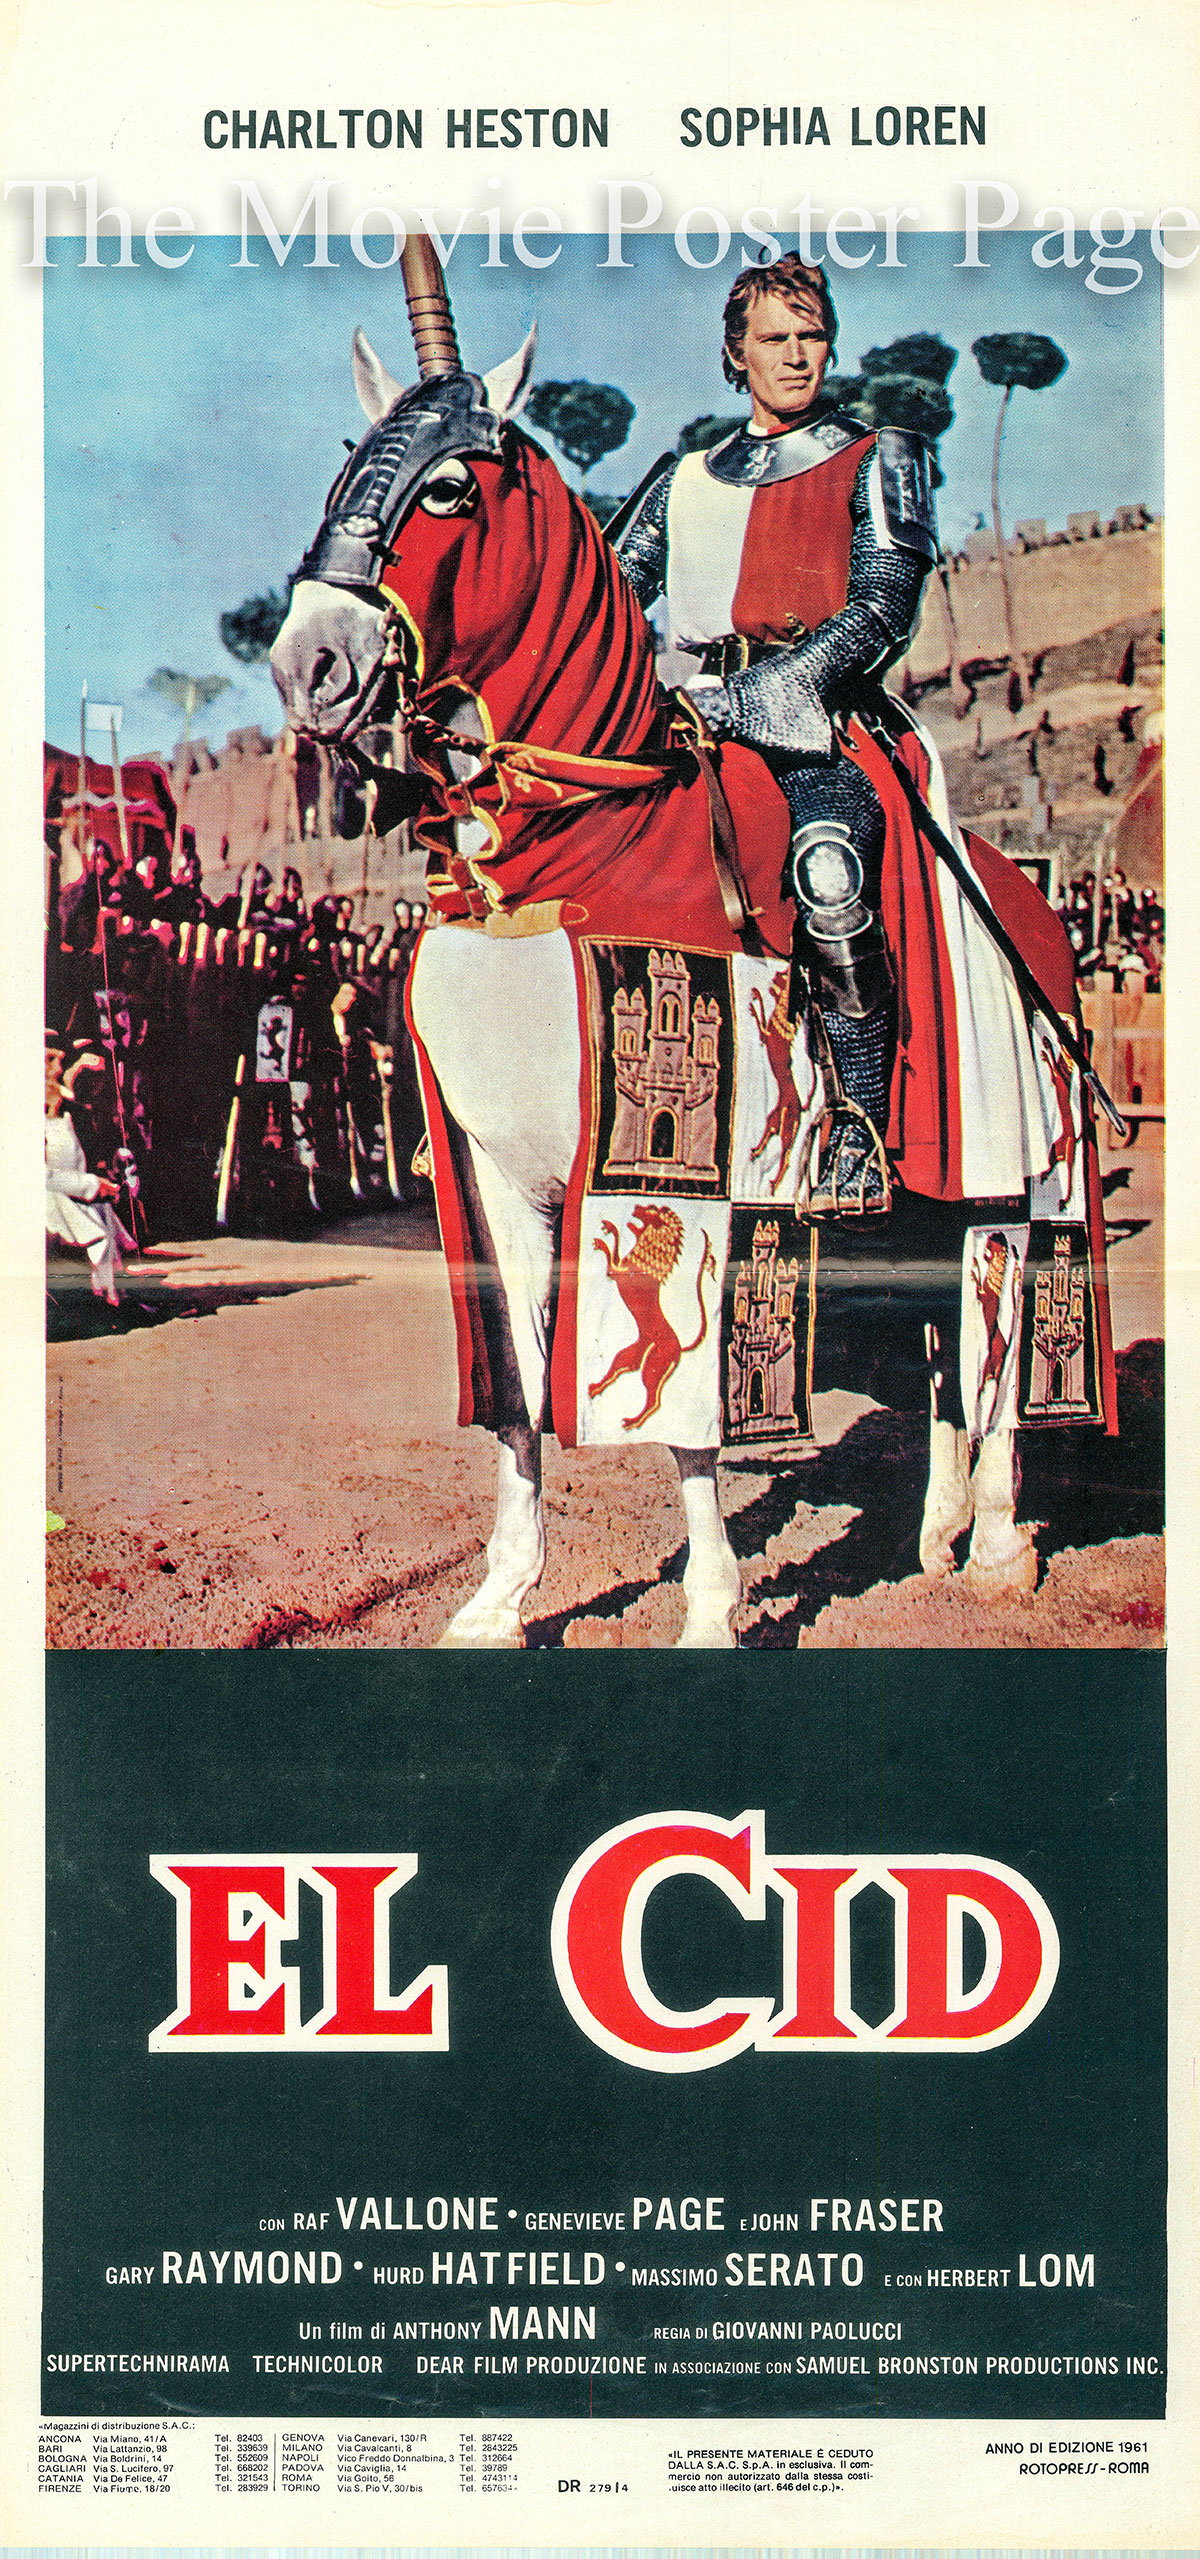 Pictured is an Italian locandina poster for the 1961 Anthony Mann film El Cid starring Charlton Heston and Sophia Loren.